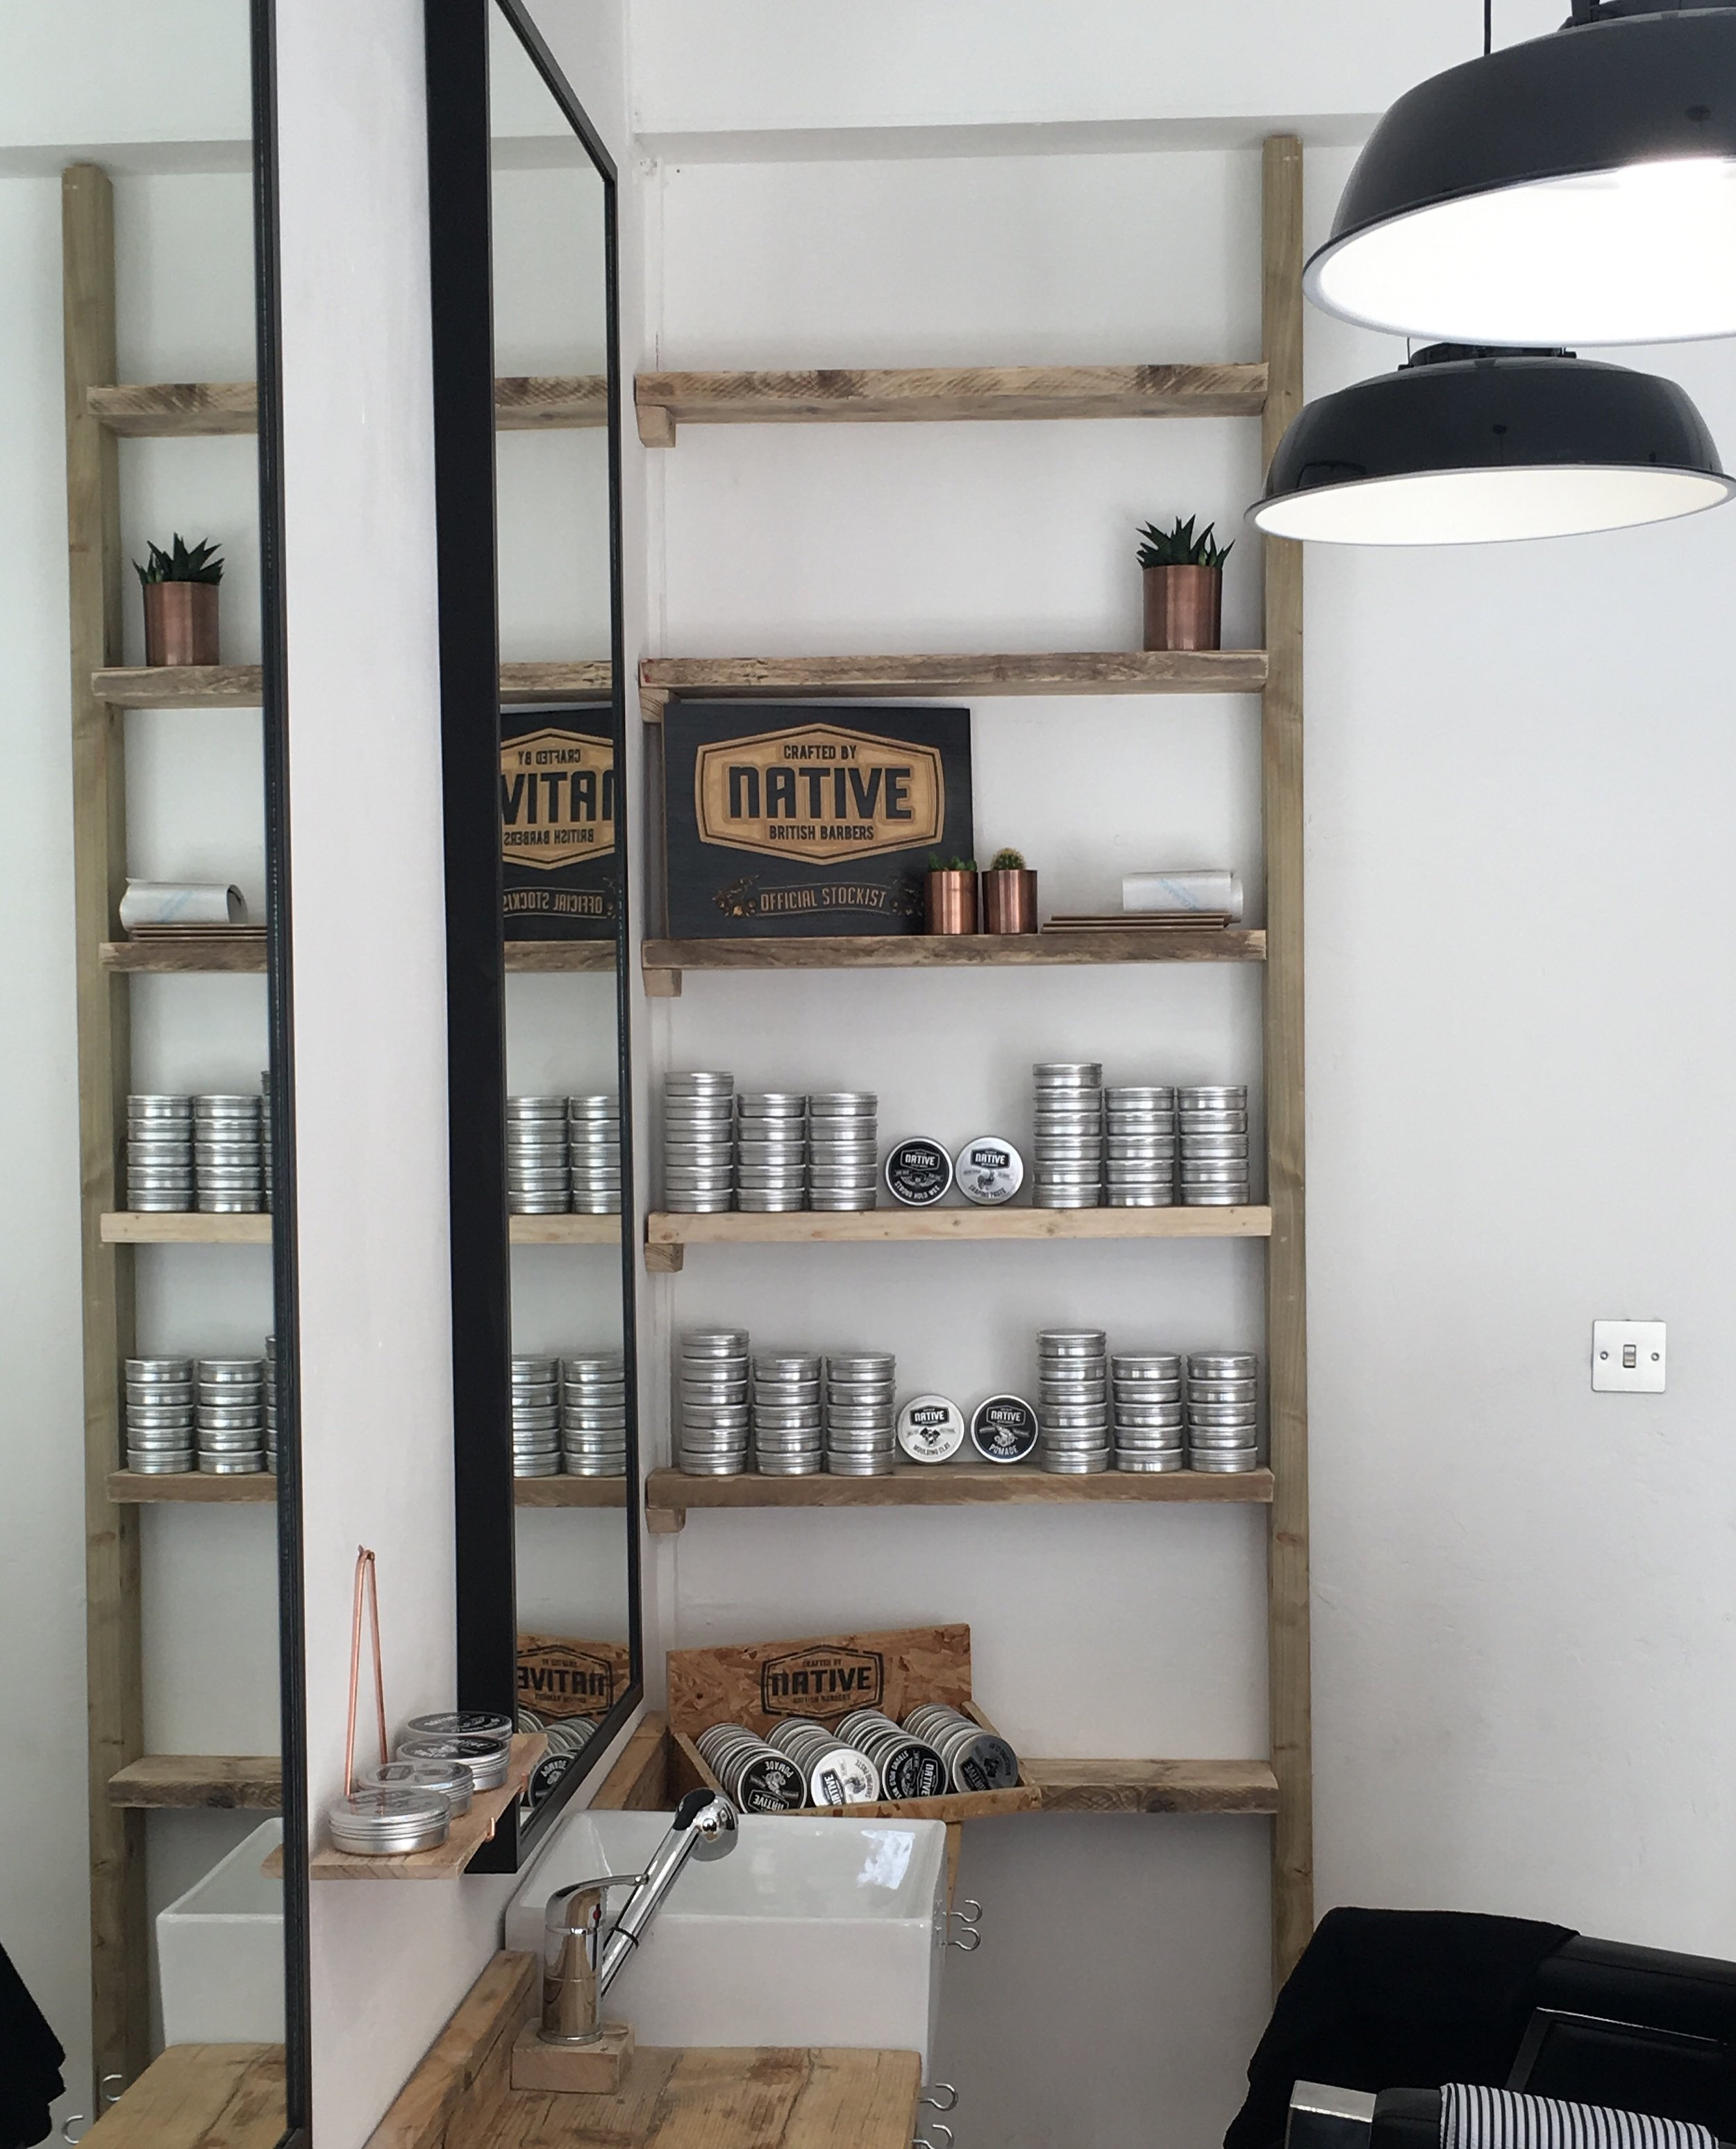 Native Products display at e-street barbers hackney